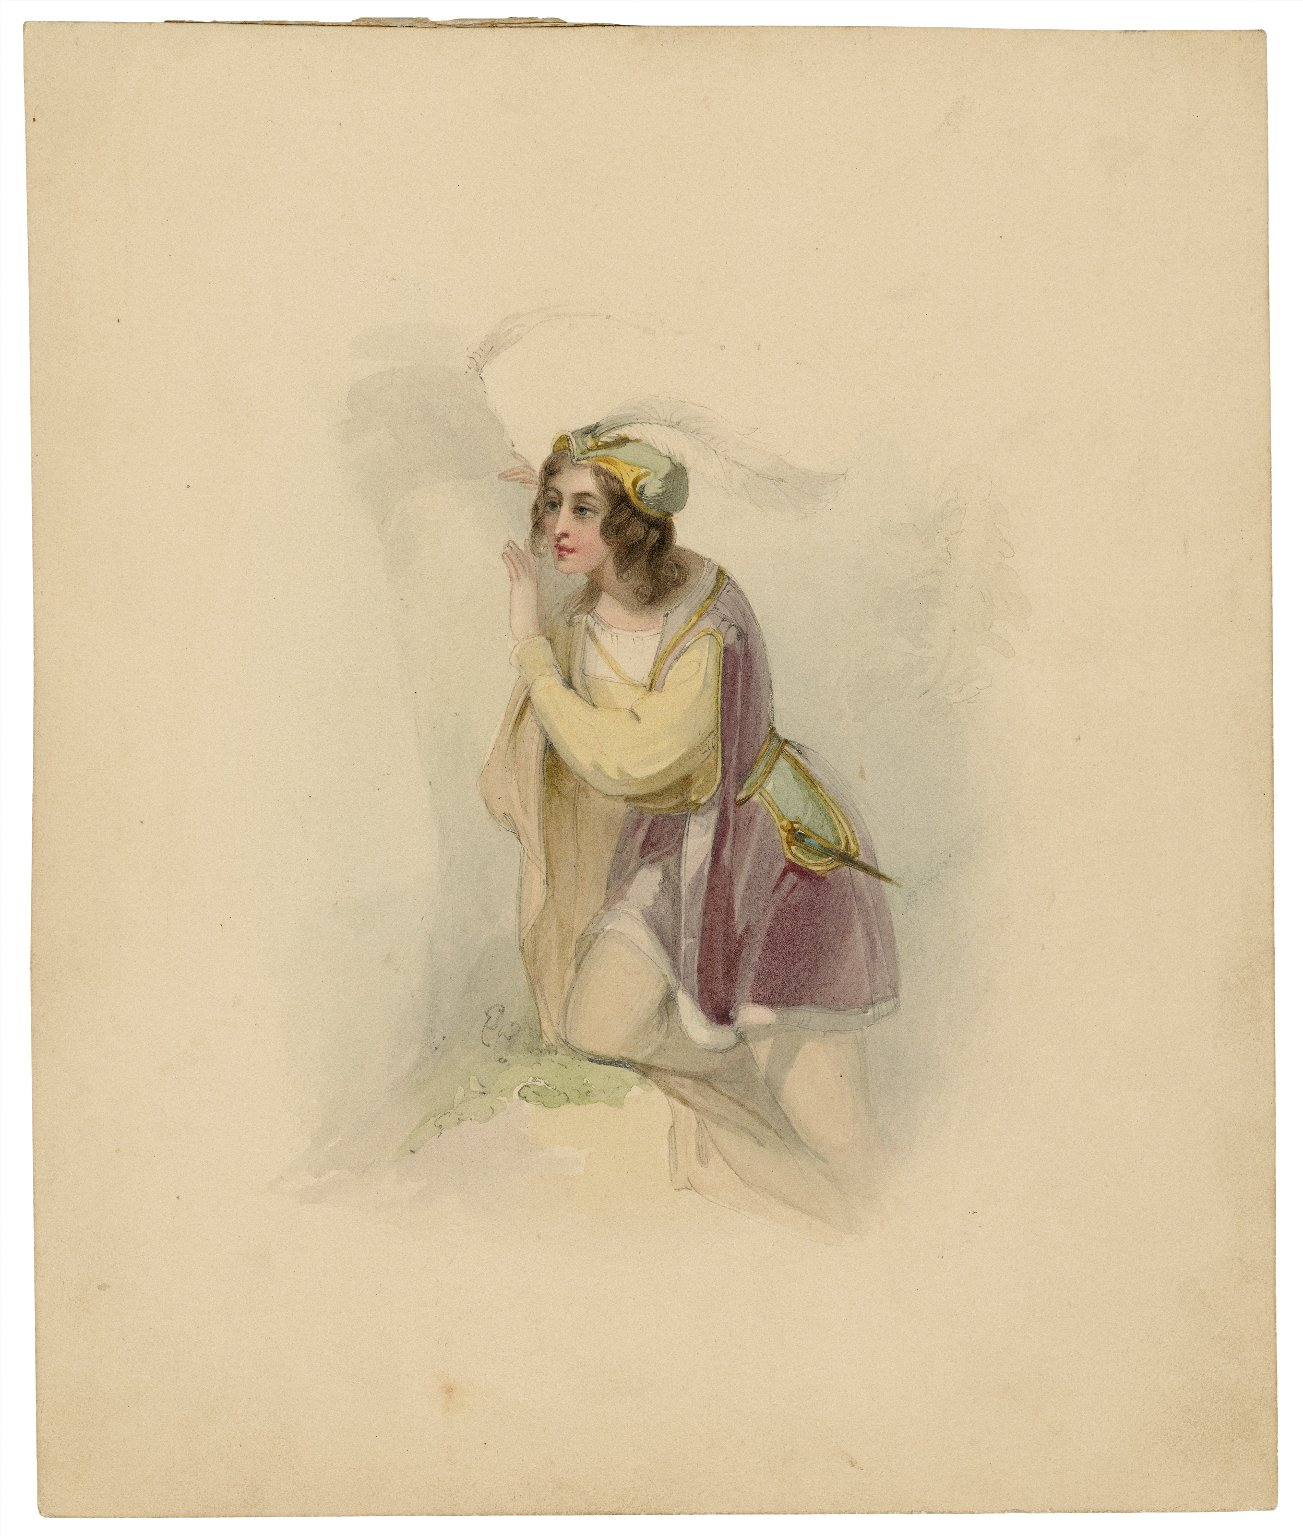 [Portrait of Rosalind in Shakespeare's As you like it] [graphic] / [J. Smith].